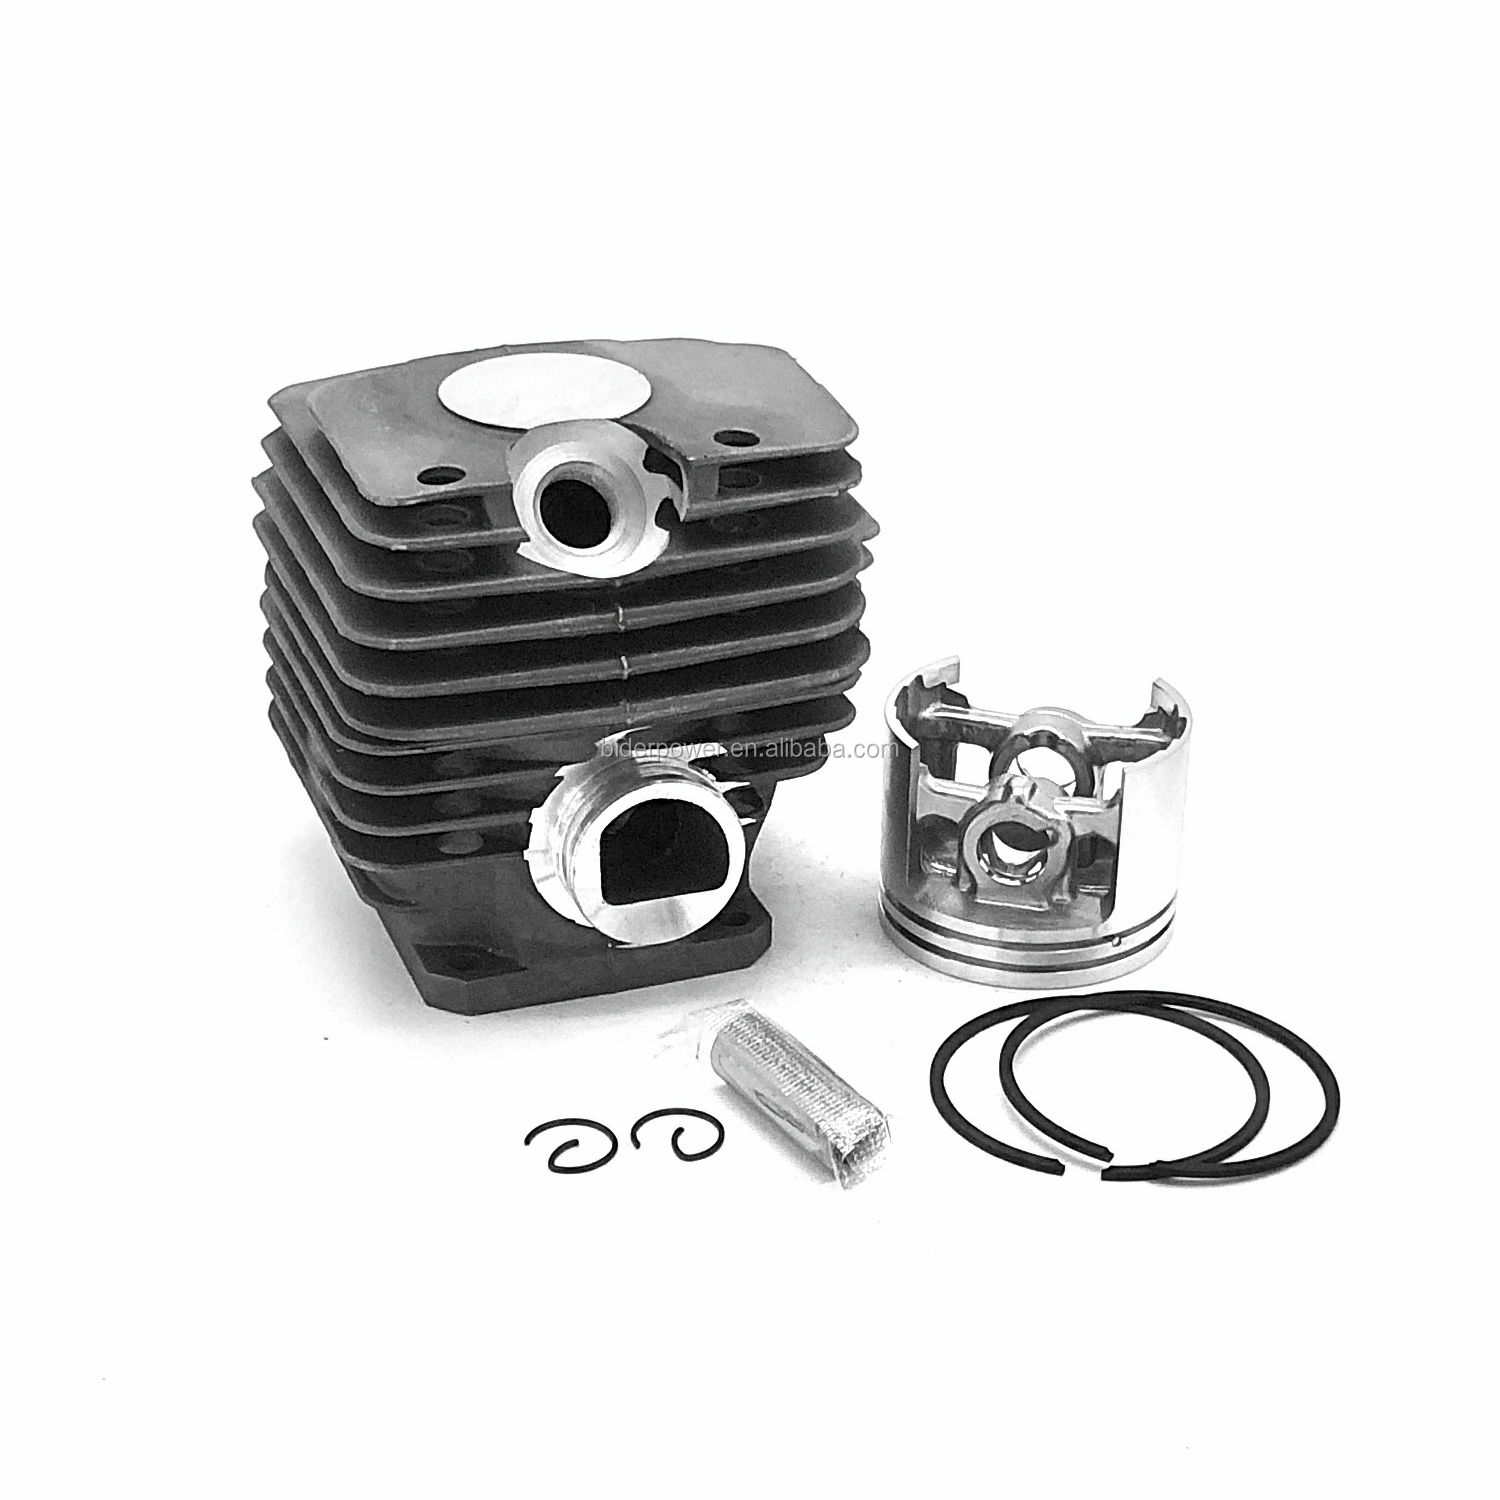 Chainsaw spare parts Cylinder piston kit for stihl 038 MS380 Nikasil cylinder